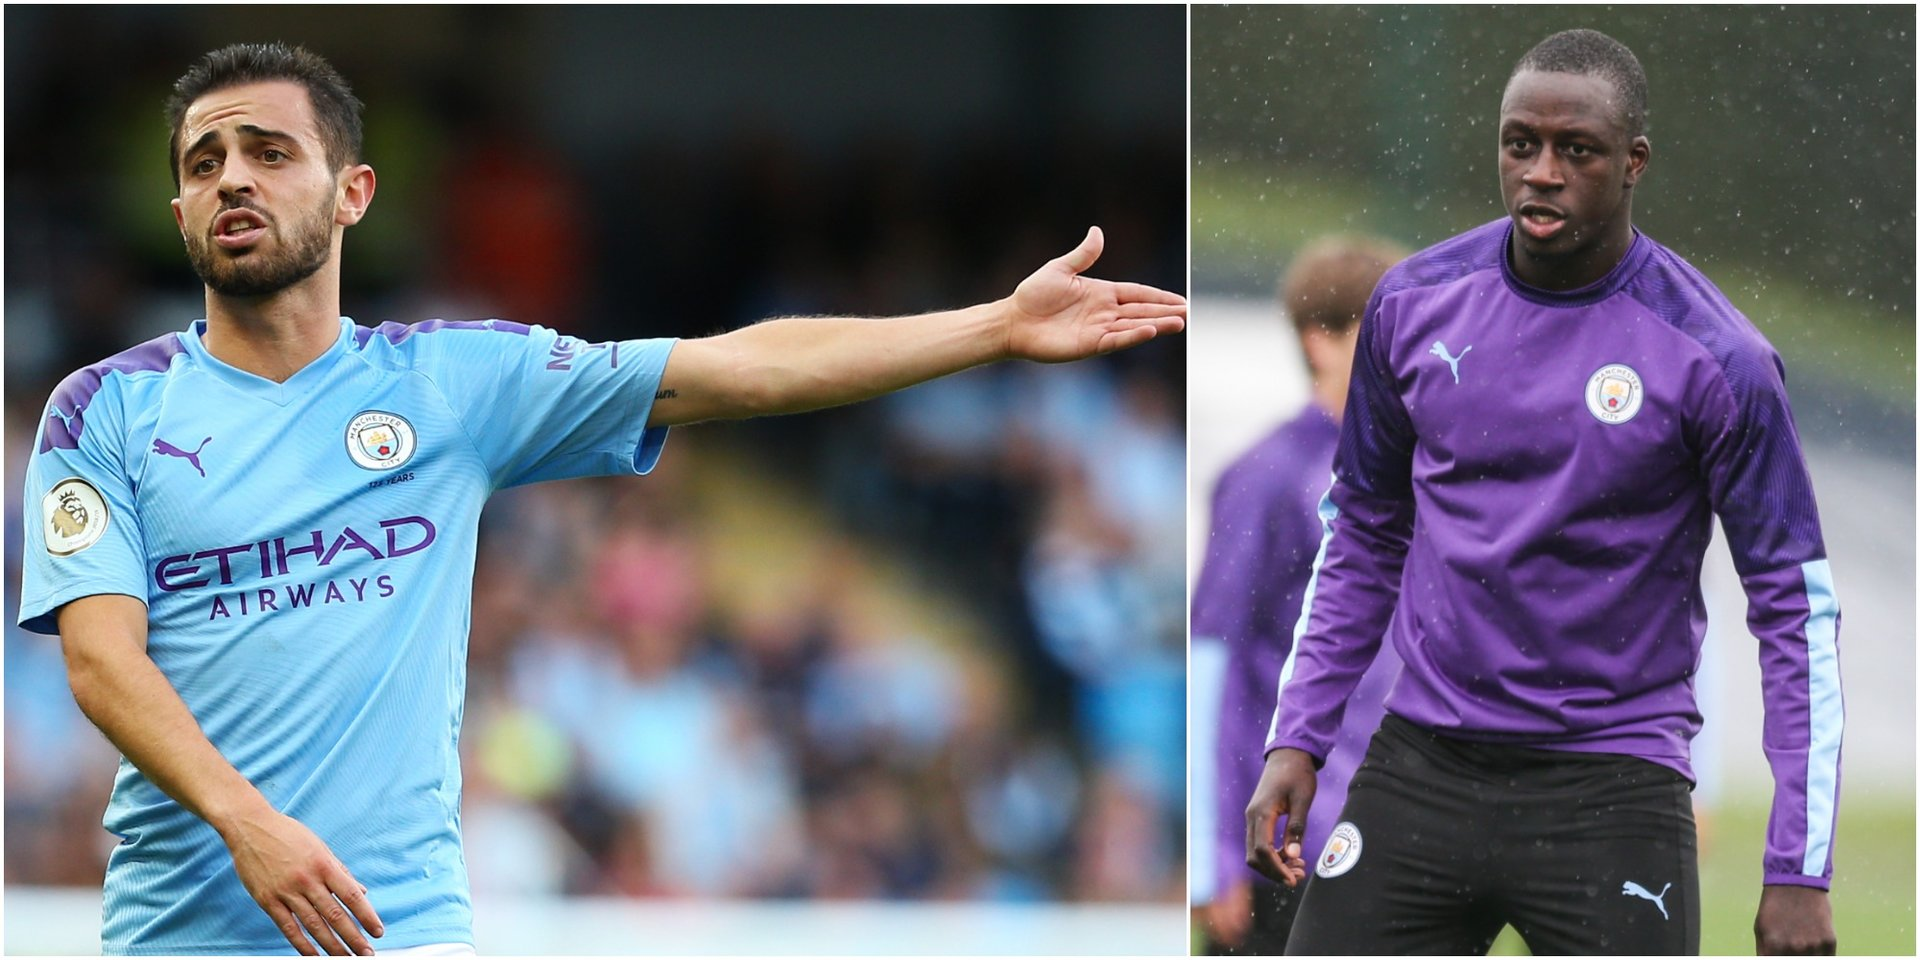 Manchester City star Bernardo Silva said you 'can't even joke with a friend' after being forced to delete a 'racist' tweet about his black teammate